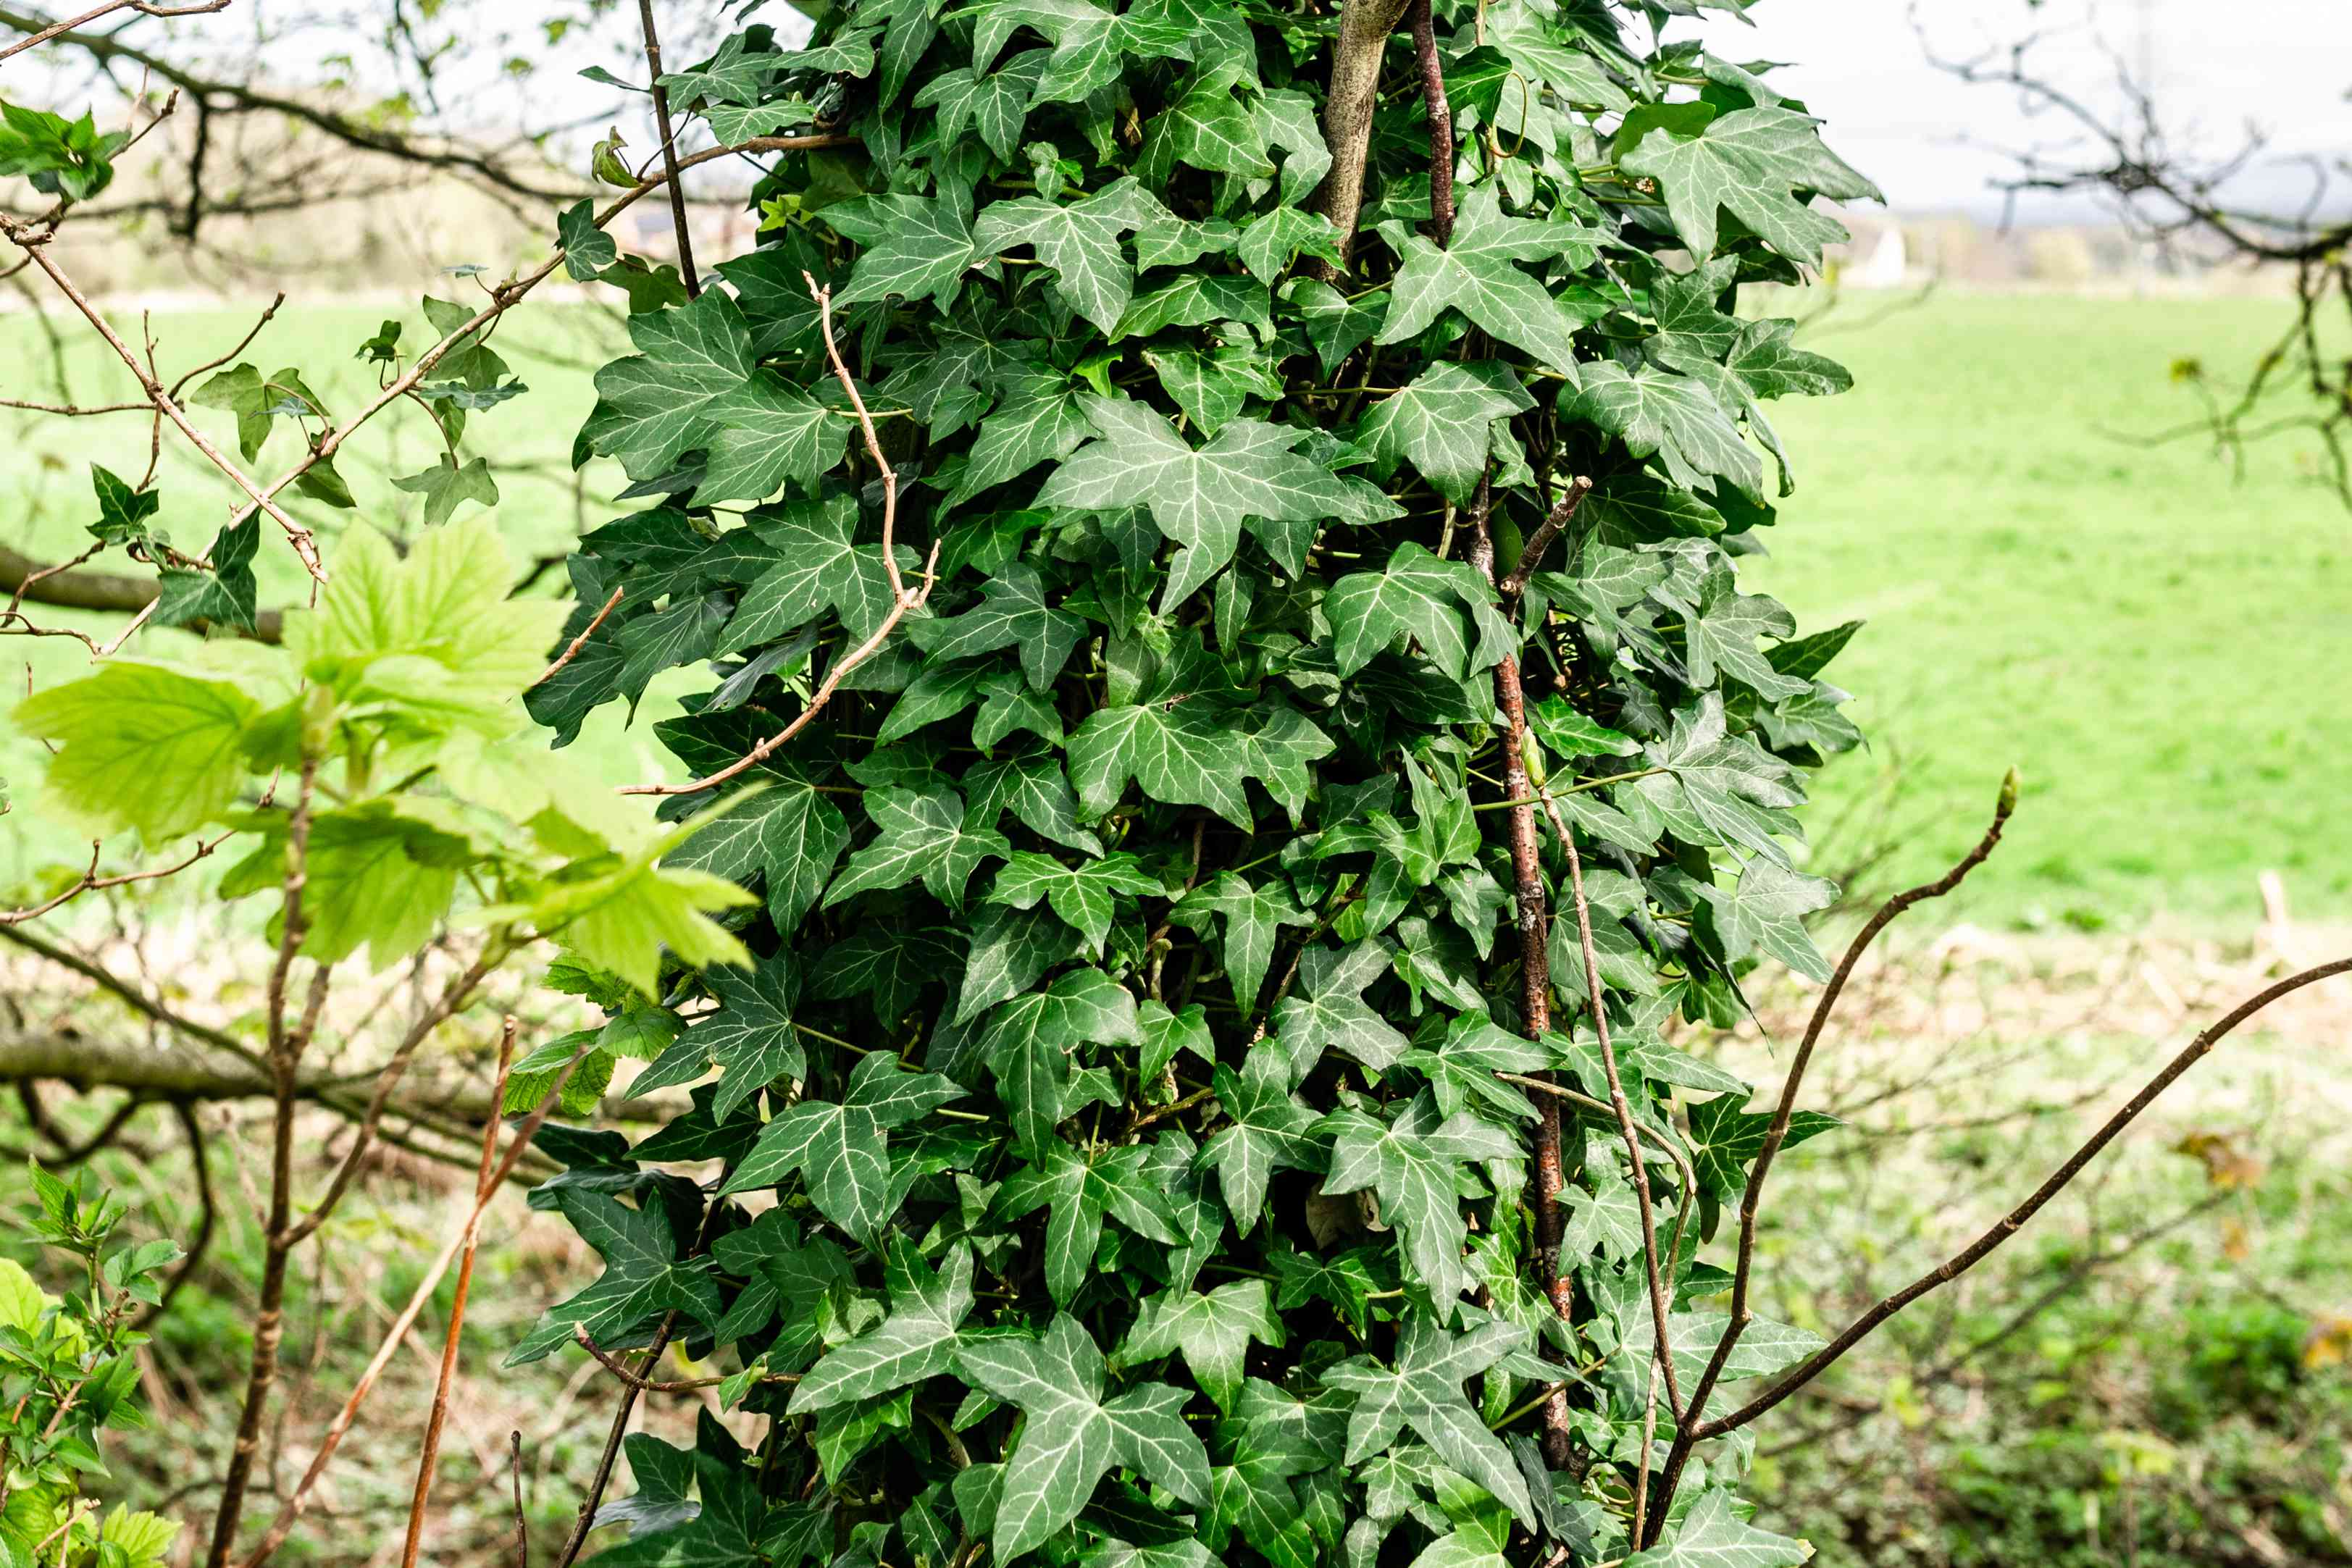 english ivy growing on a tree trunk